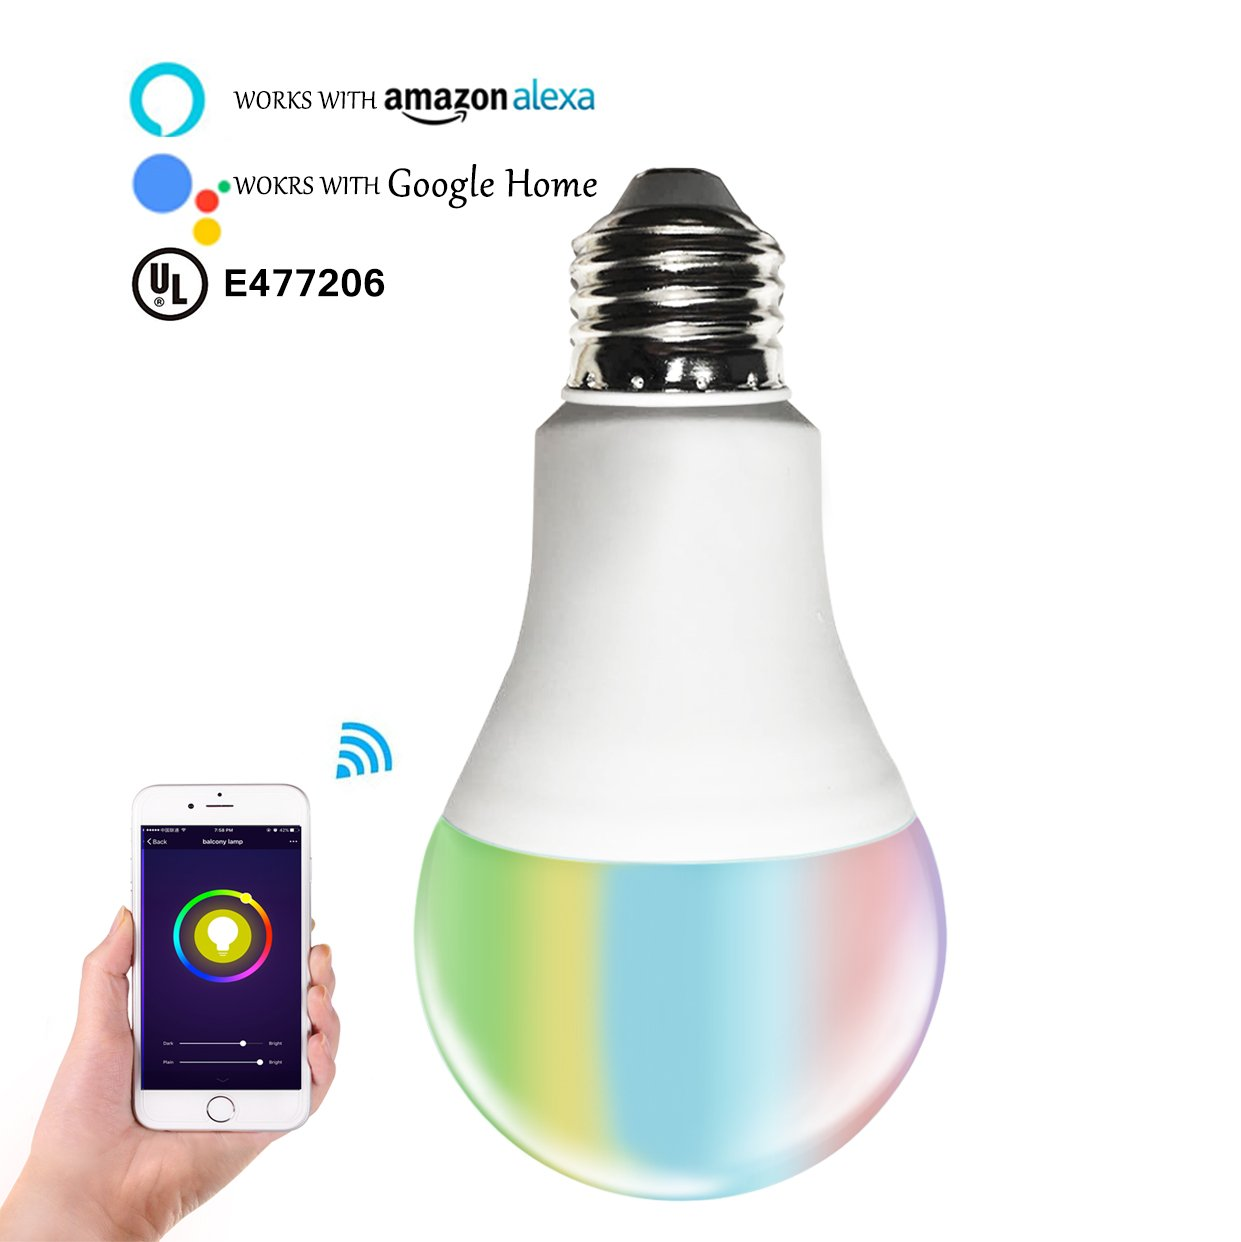 Smart RGBW Tunable Warm White & Color LED Bulbs(6.5W), Cxy WiFi APP-Smartphone controlled LED Light Bulbs, Multicolor, Dimmable, Compatible with Alexa or Google Home , 60-Watt Equivalent.